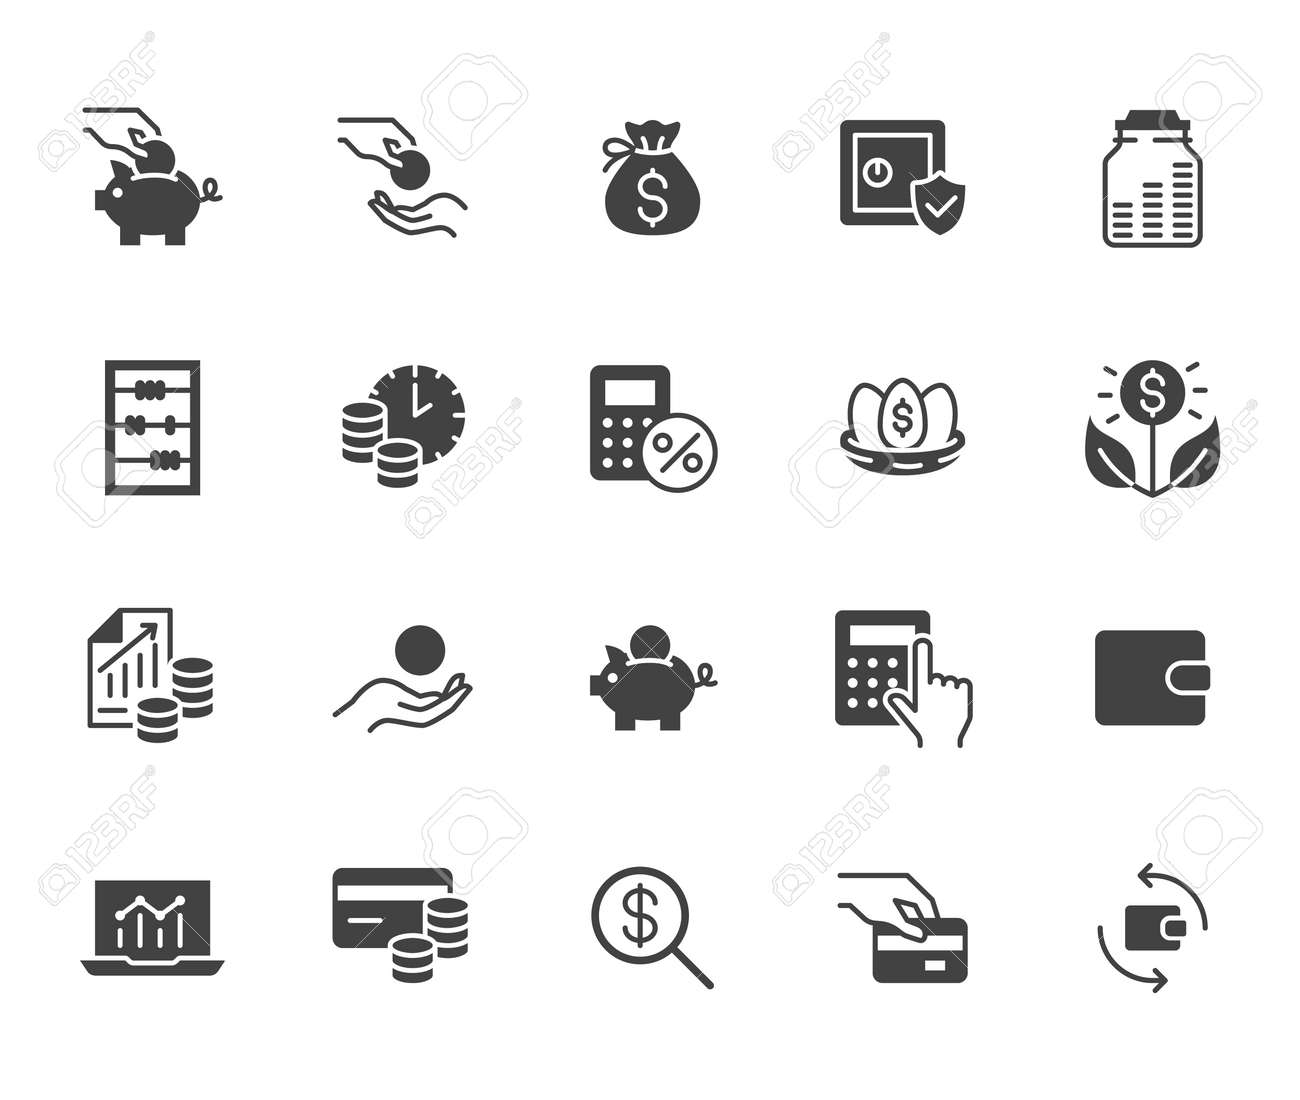 Money income flat icon set. Pension fund, profit growth, piggy bank, finance capital minimal black silhouette vector illustration. Simple glyph signs for investment application. - 162519216